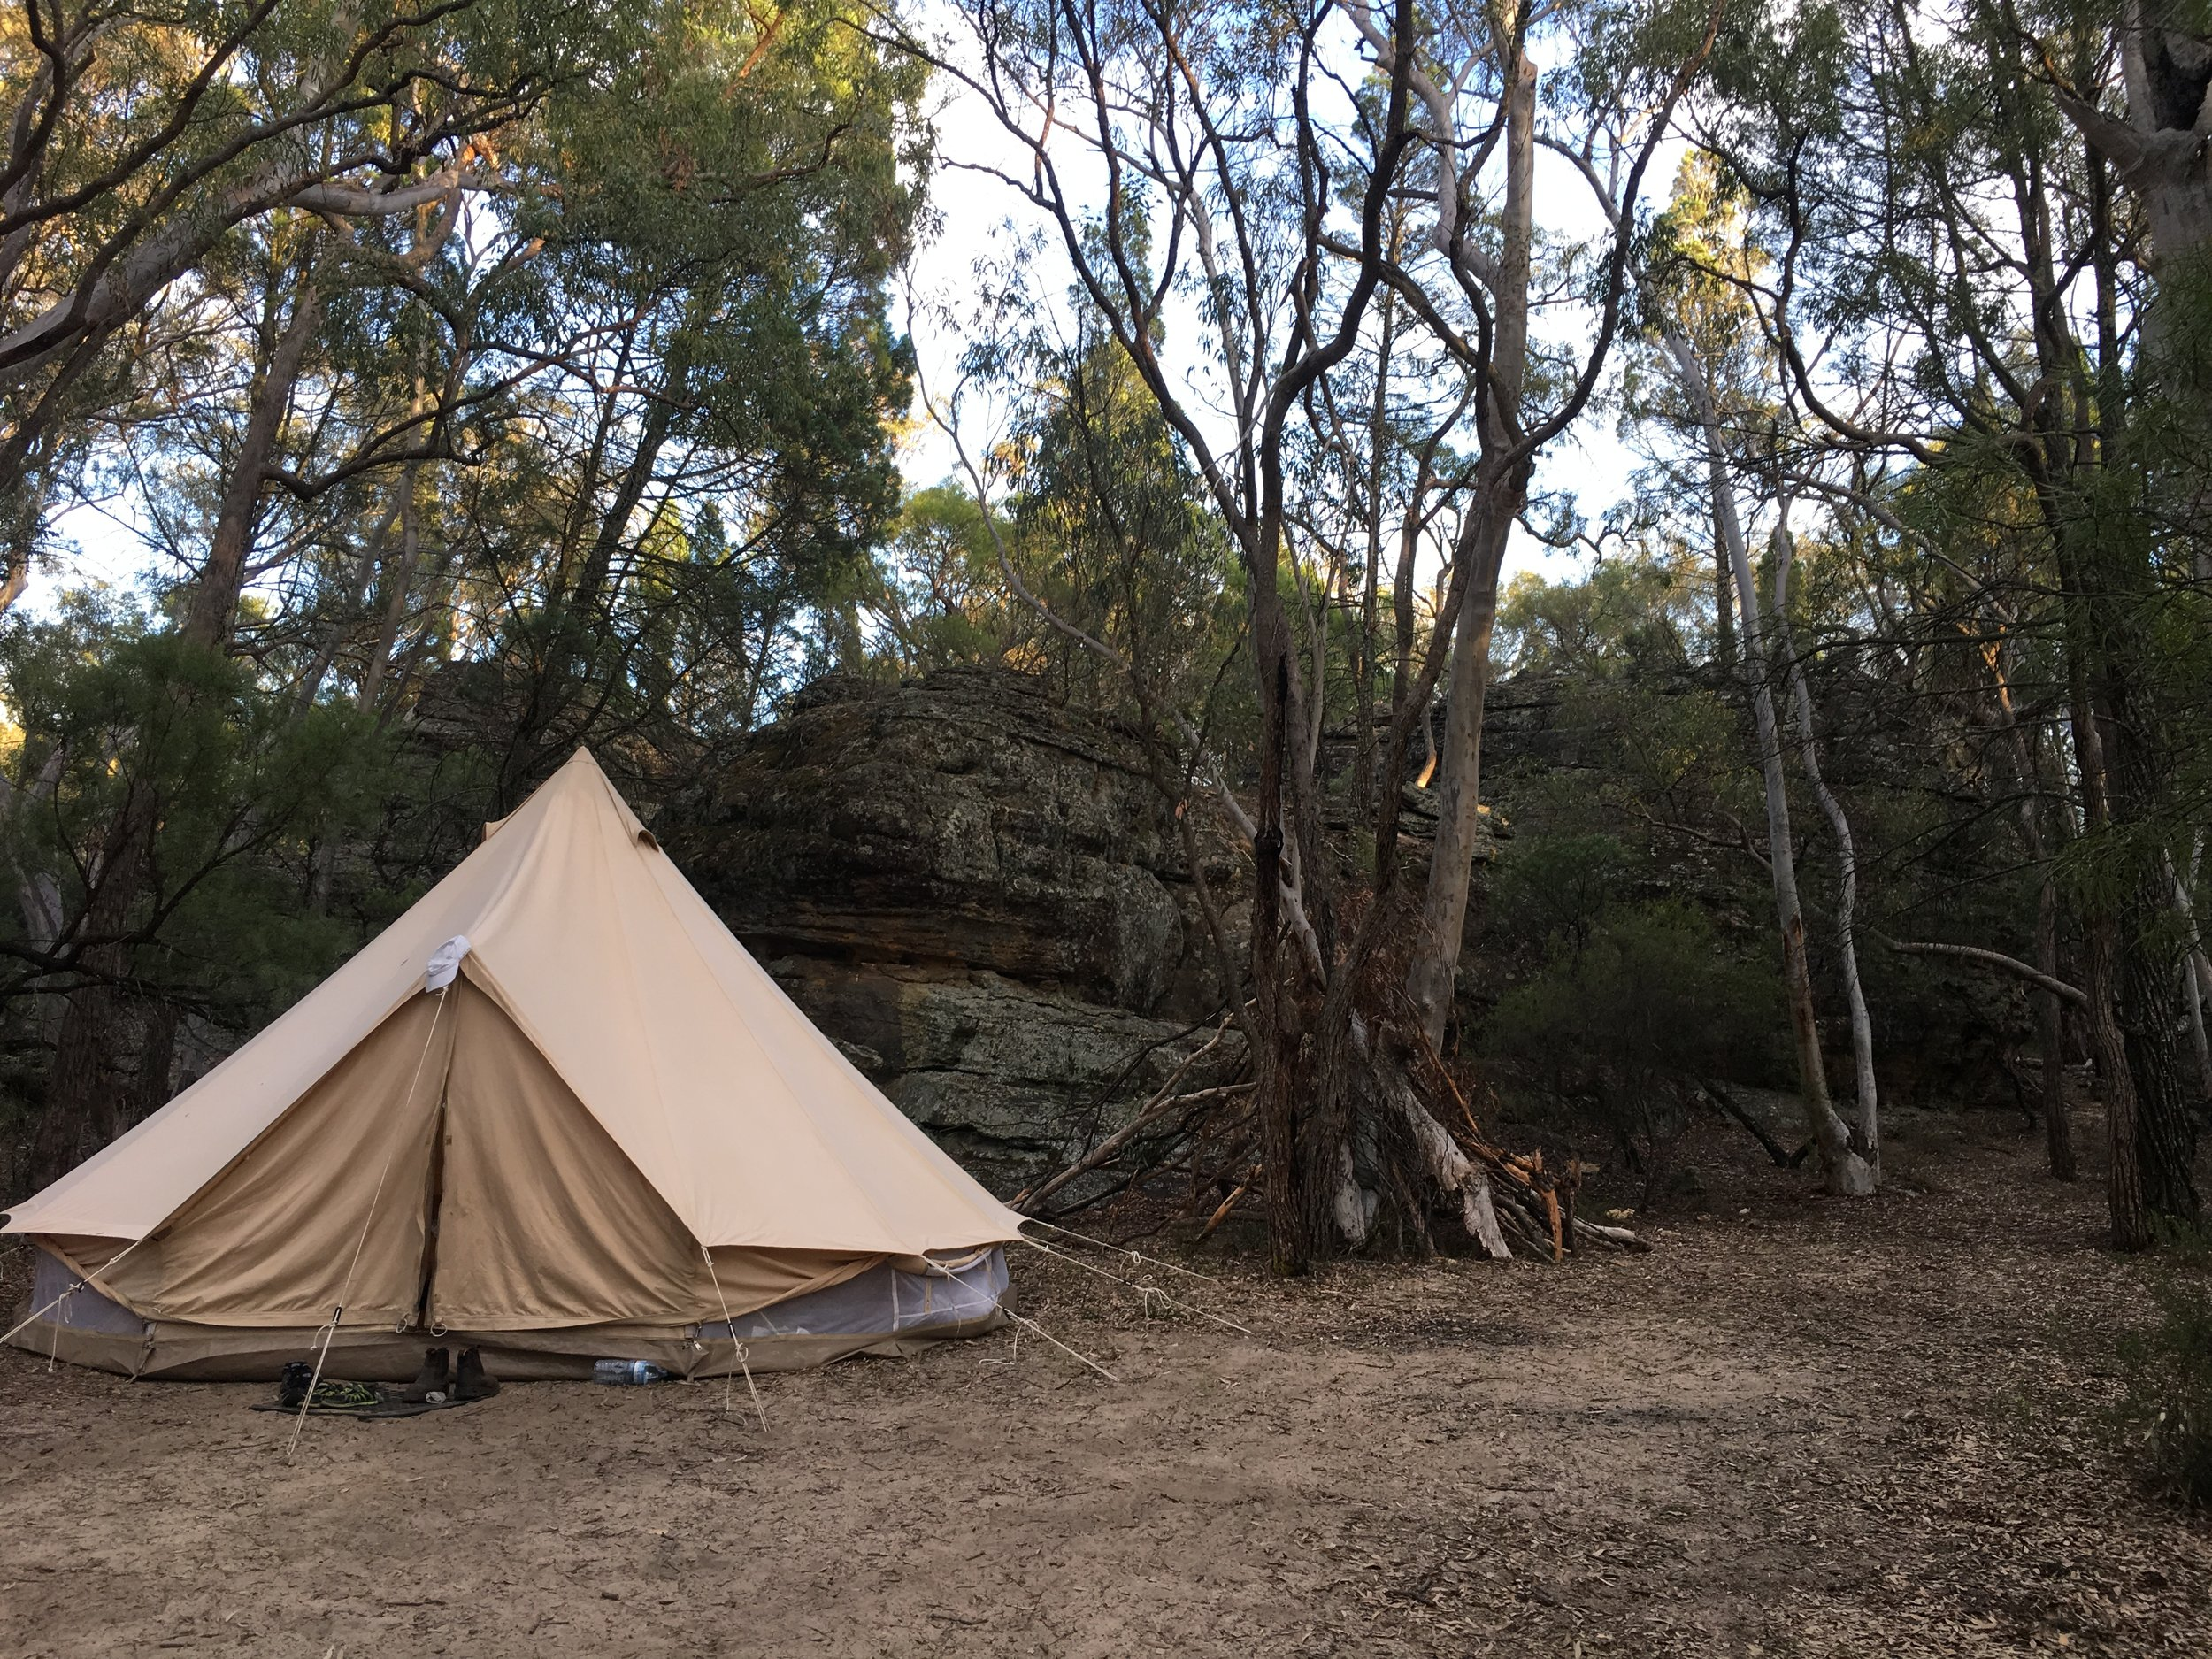 Camping in style at our recent Aboriginal cultural Meditation retreat weekend.